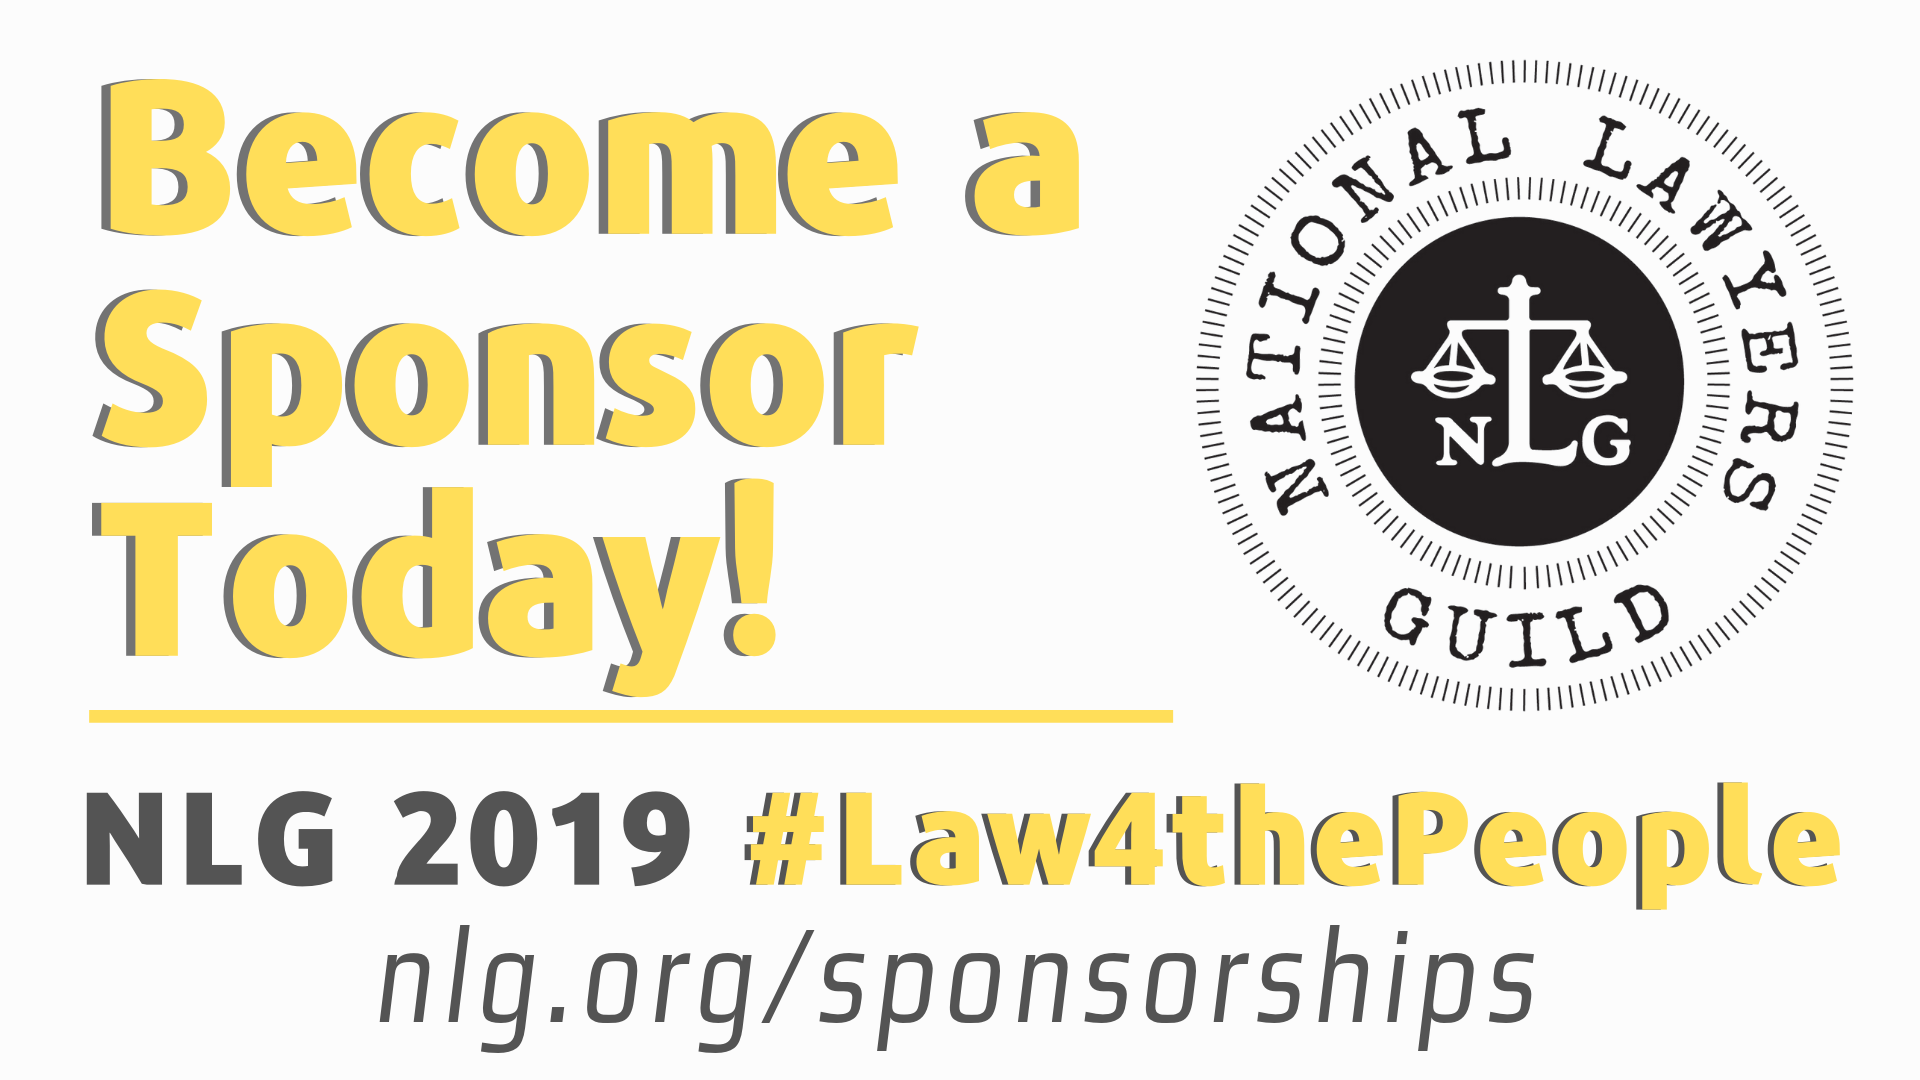 Become a Sponsor Today! nlg.org/sponsorships